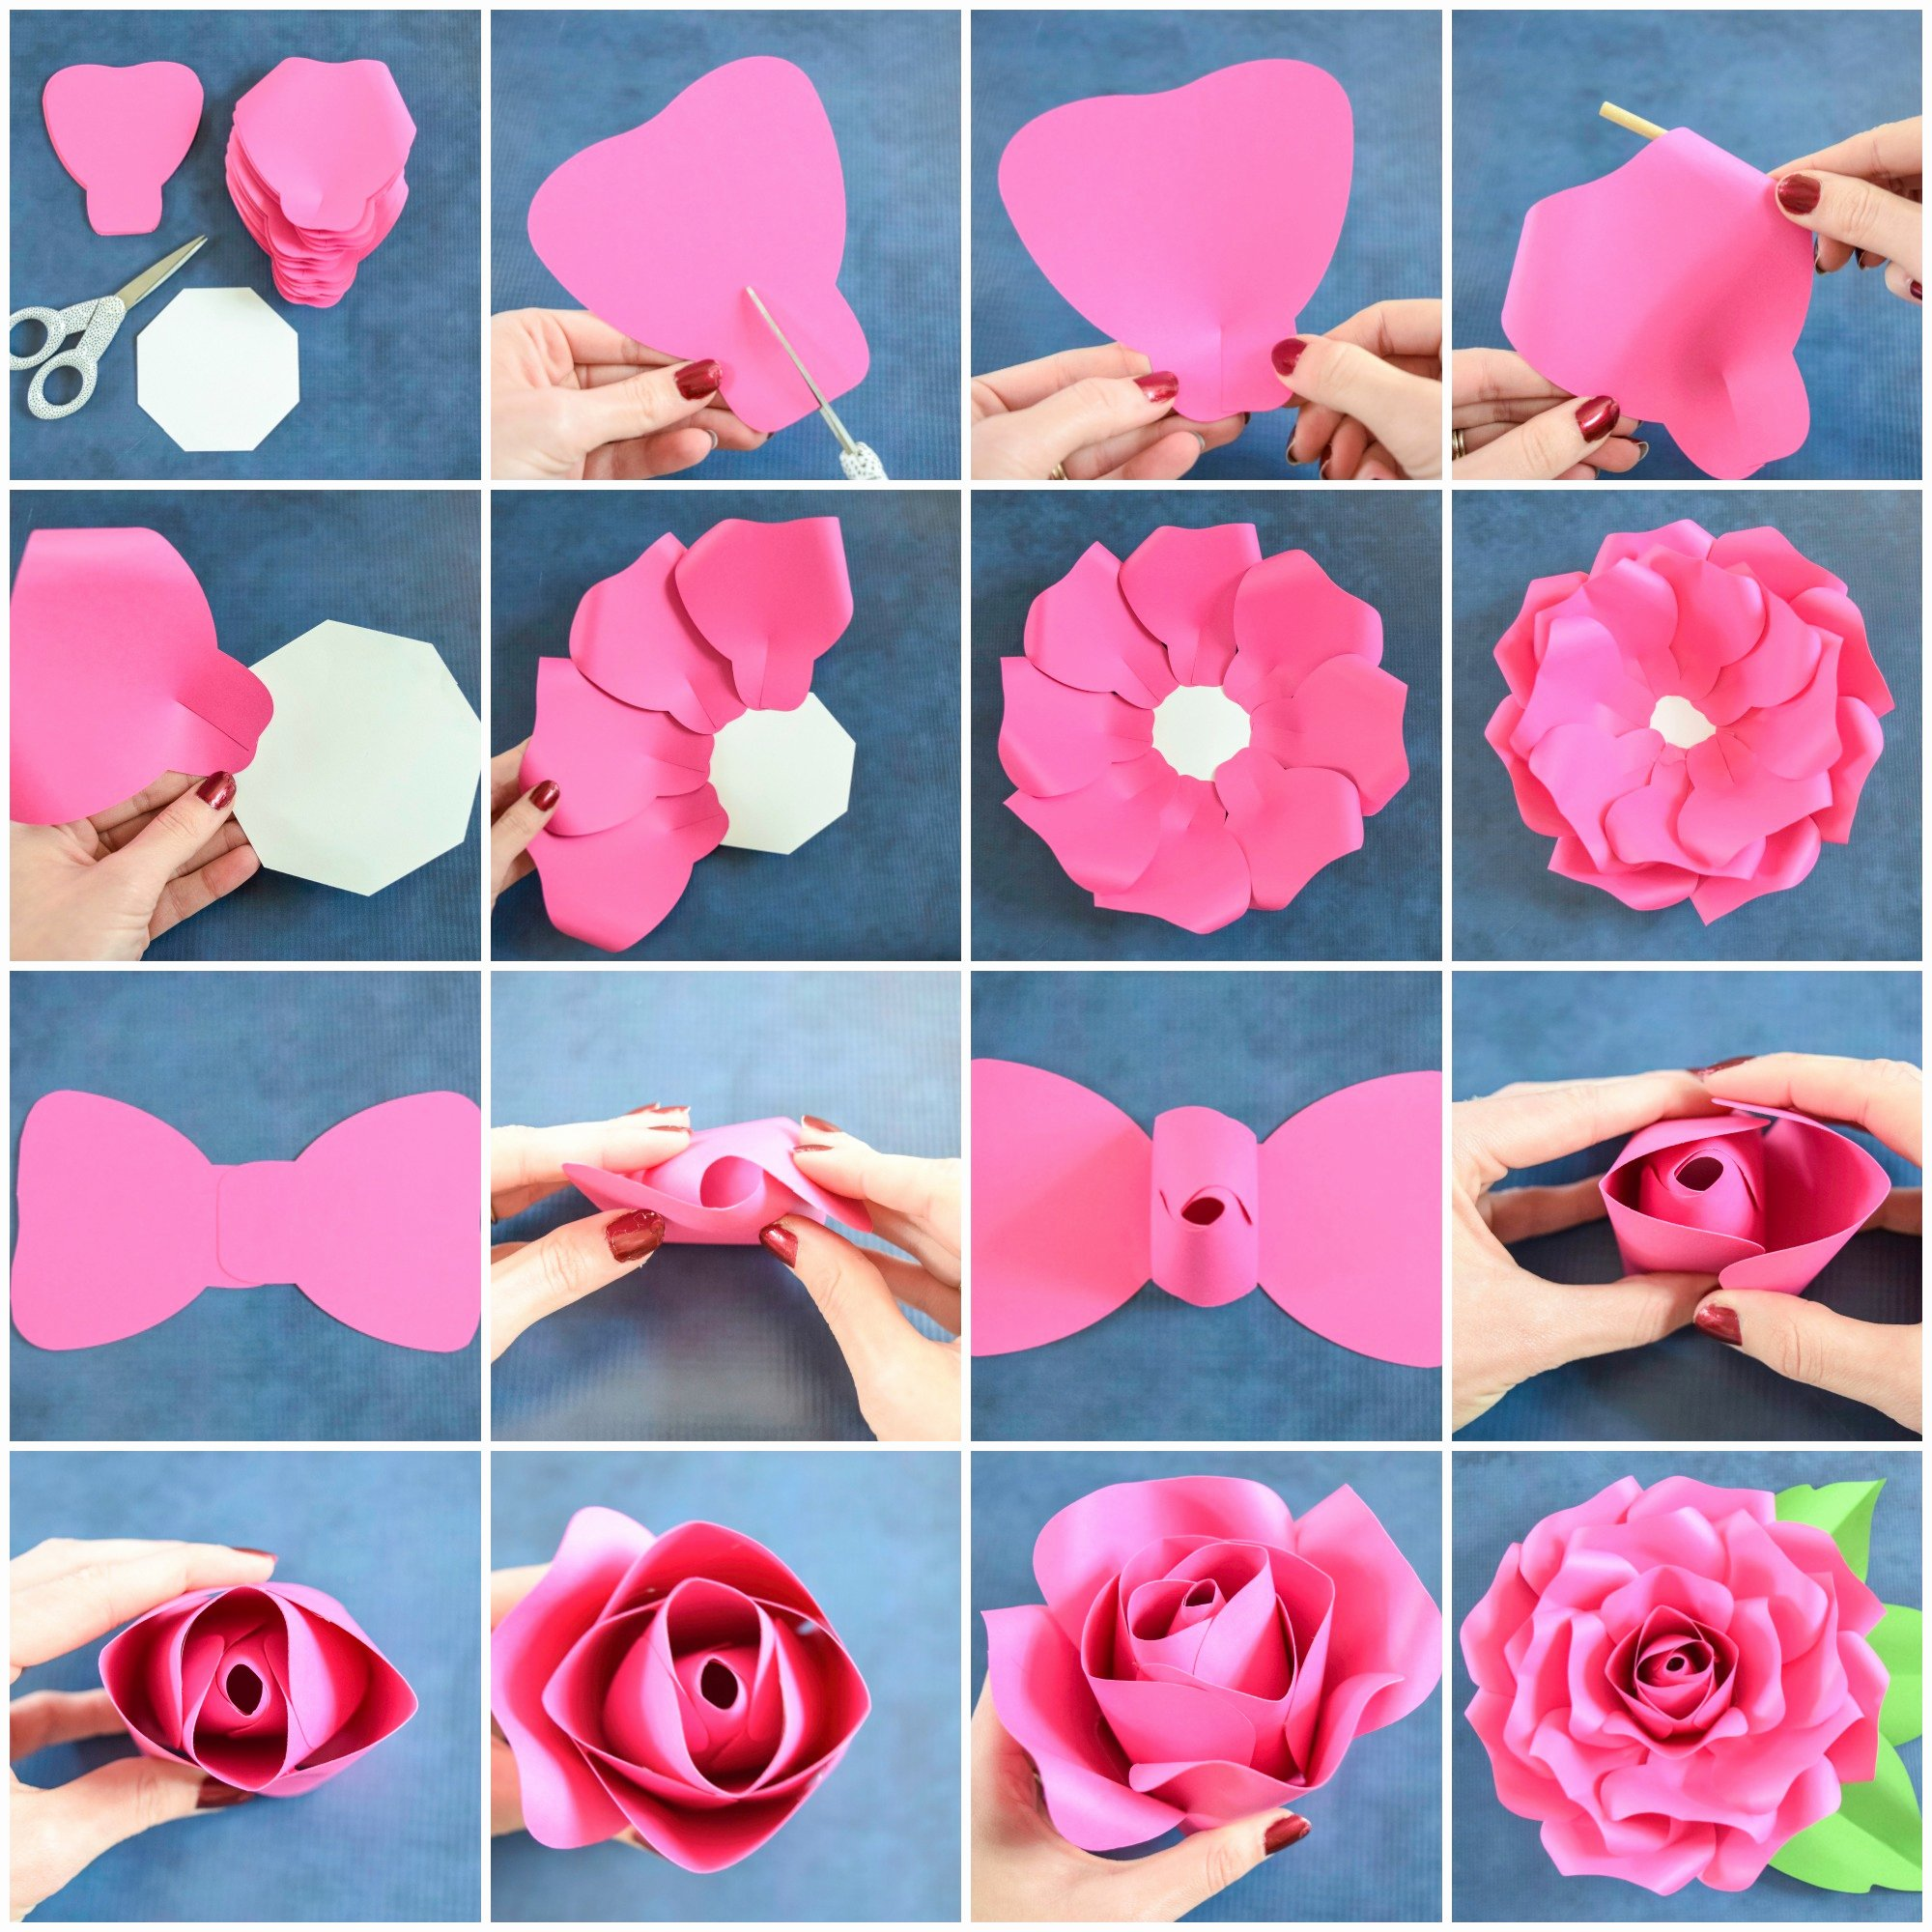 Diy Paper Flower Template Inspirational Giant Paper Flowers How to Make Paper Garden Roses with